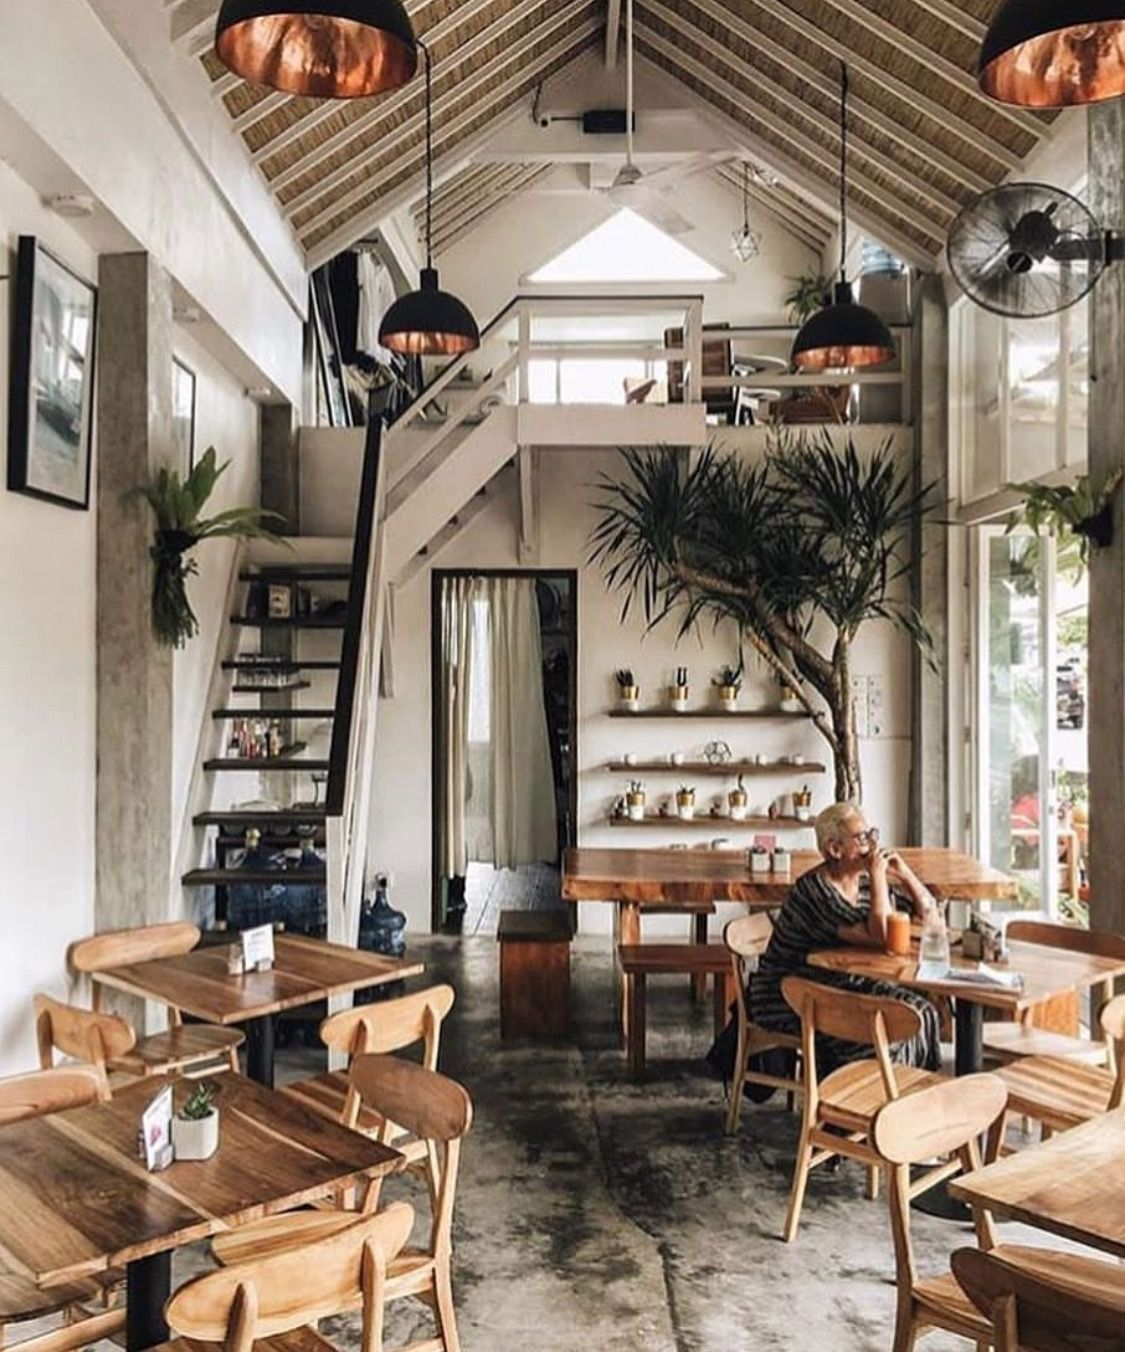 24 Coffee Shops In Austin Sollten Sie Versuchen In 2020 Cafe Interior Design Coffee Shop Decor Loft Cafe